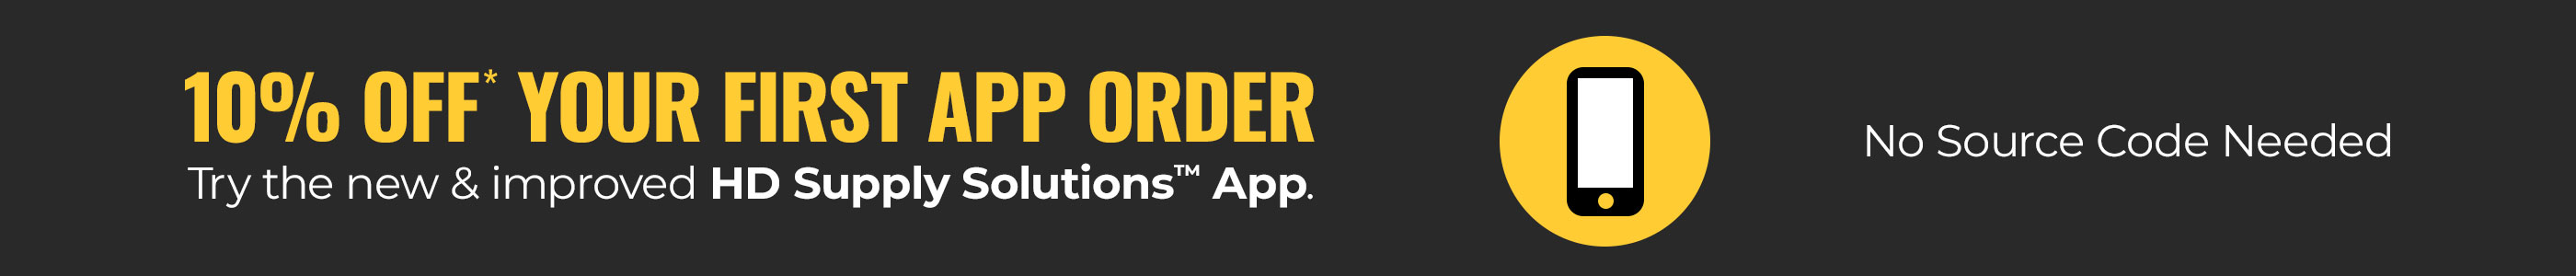 10% Off Your First App Order